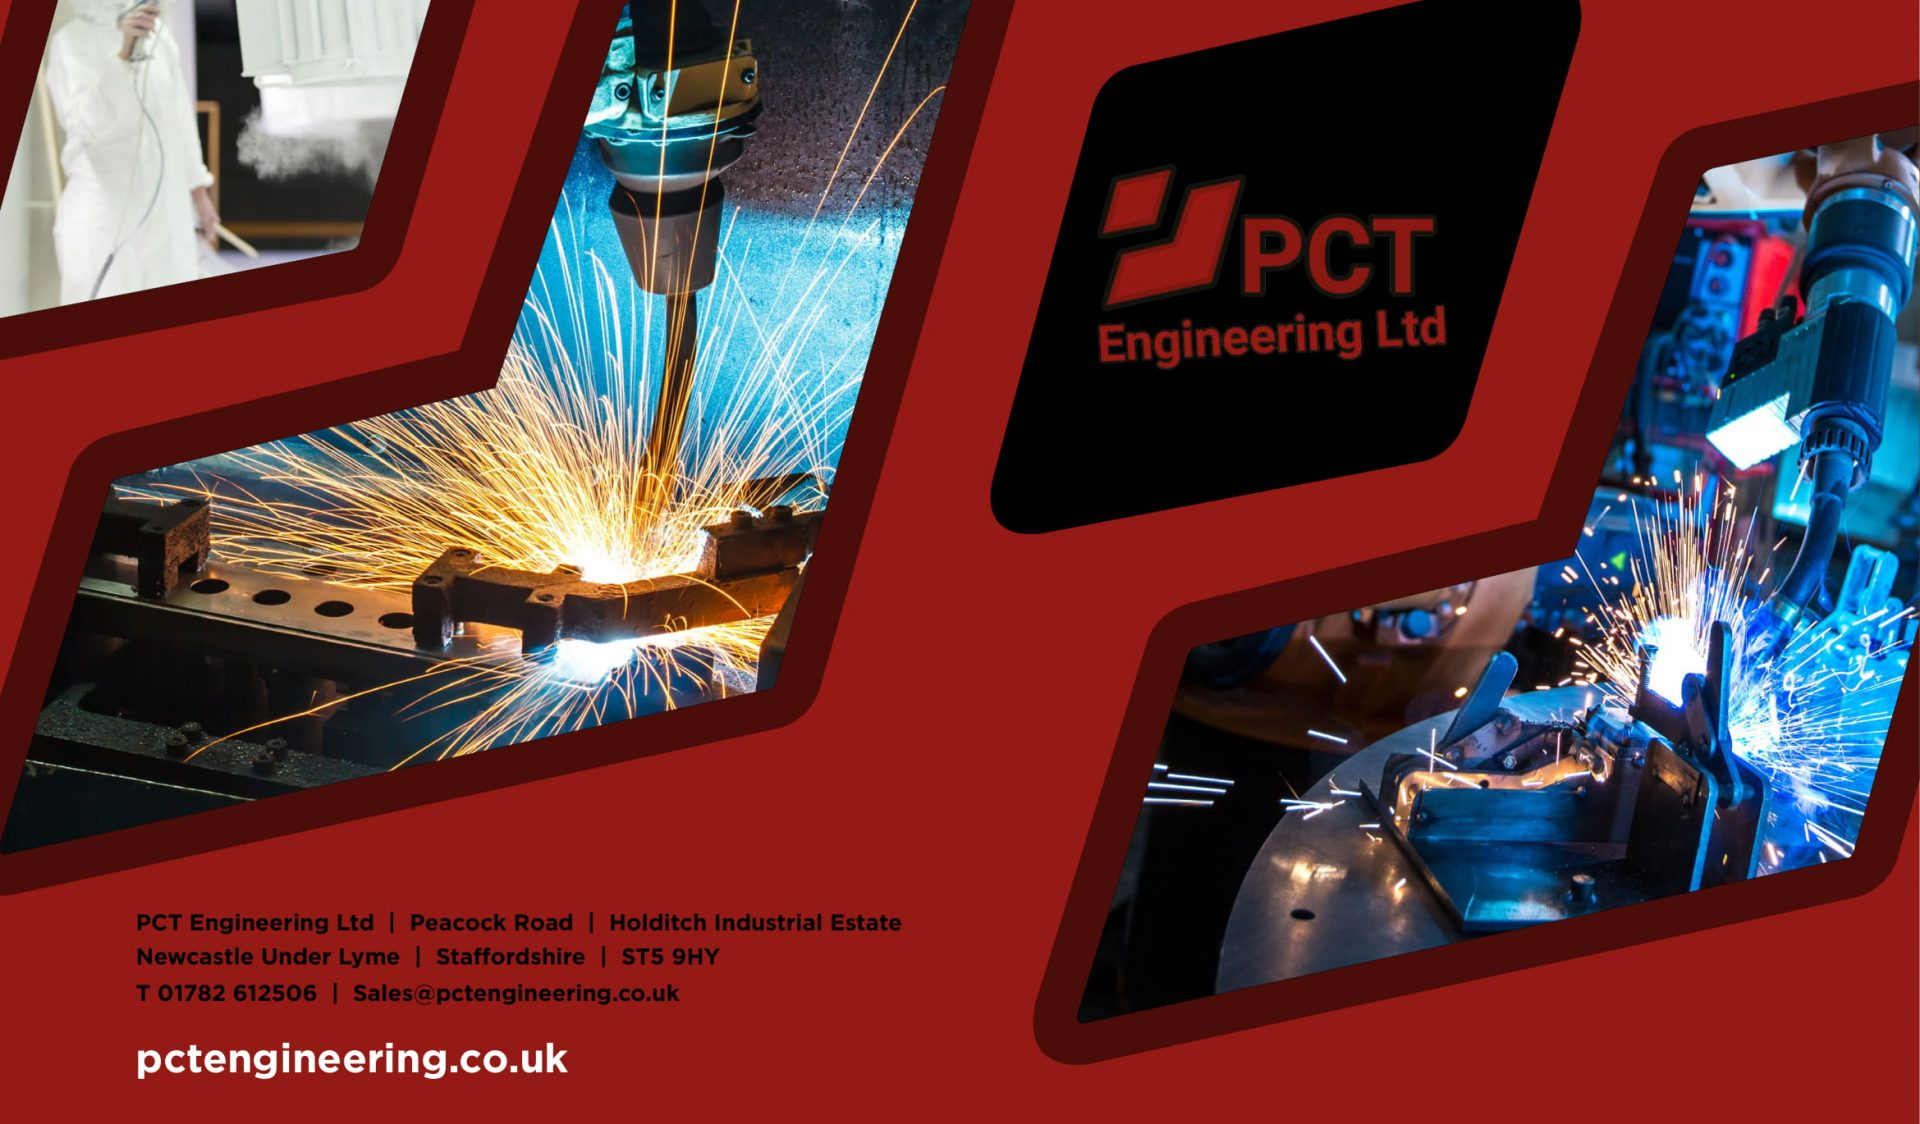 PCT Engineering Ltd